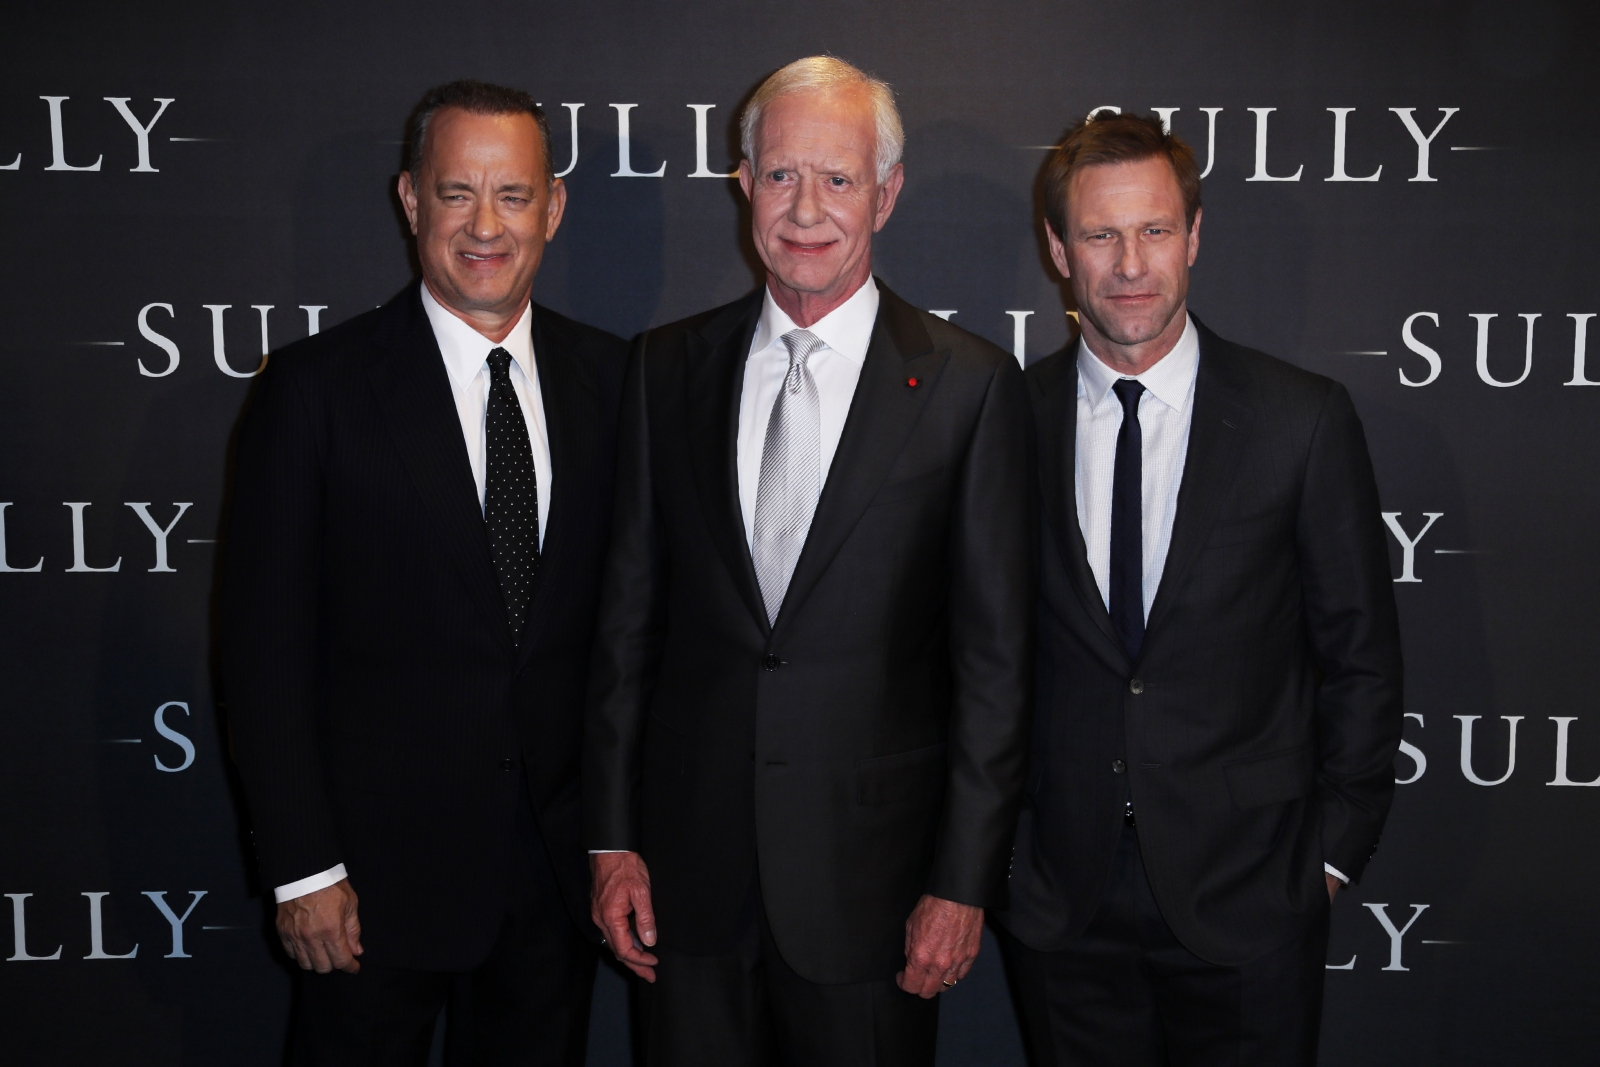 Sully movie: Real-life pilot Chesley Sullenberger on 'amazingly accurate' flying sequences